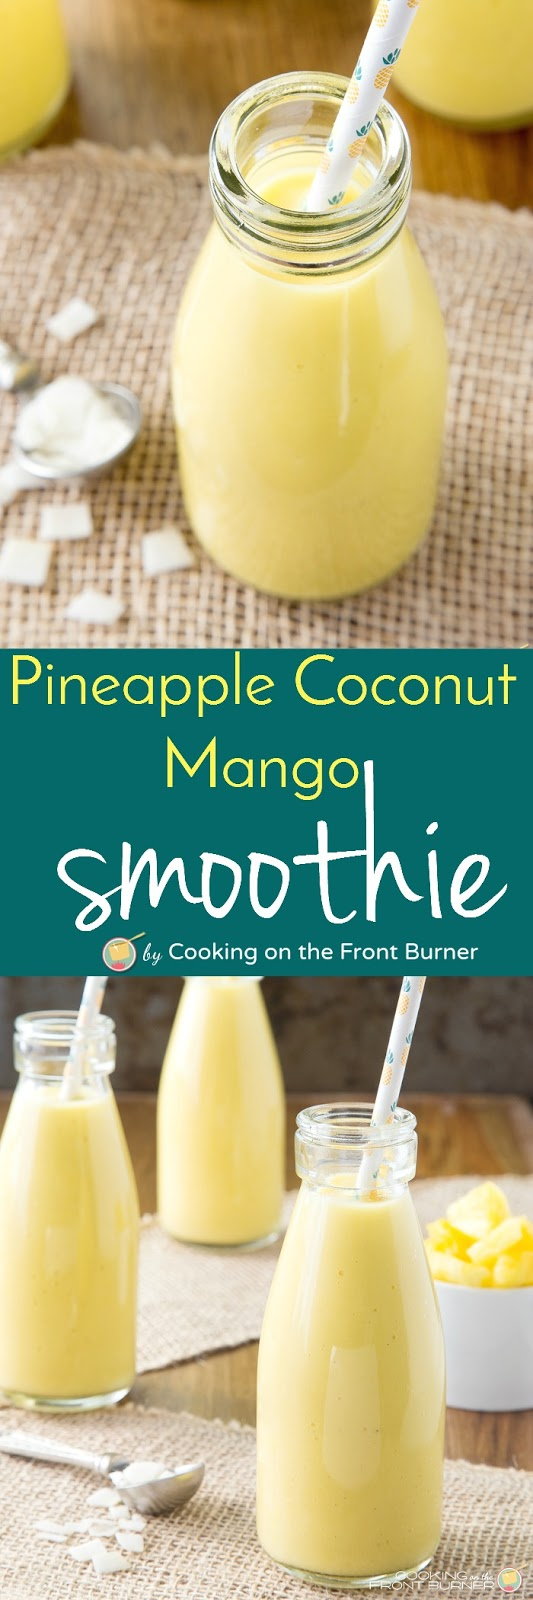 Pineapple Coconut Mango Smoothie | Cooking on the Front Burner